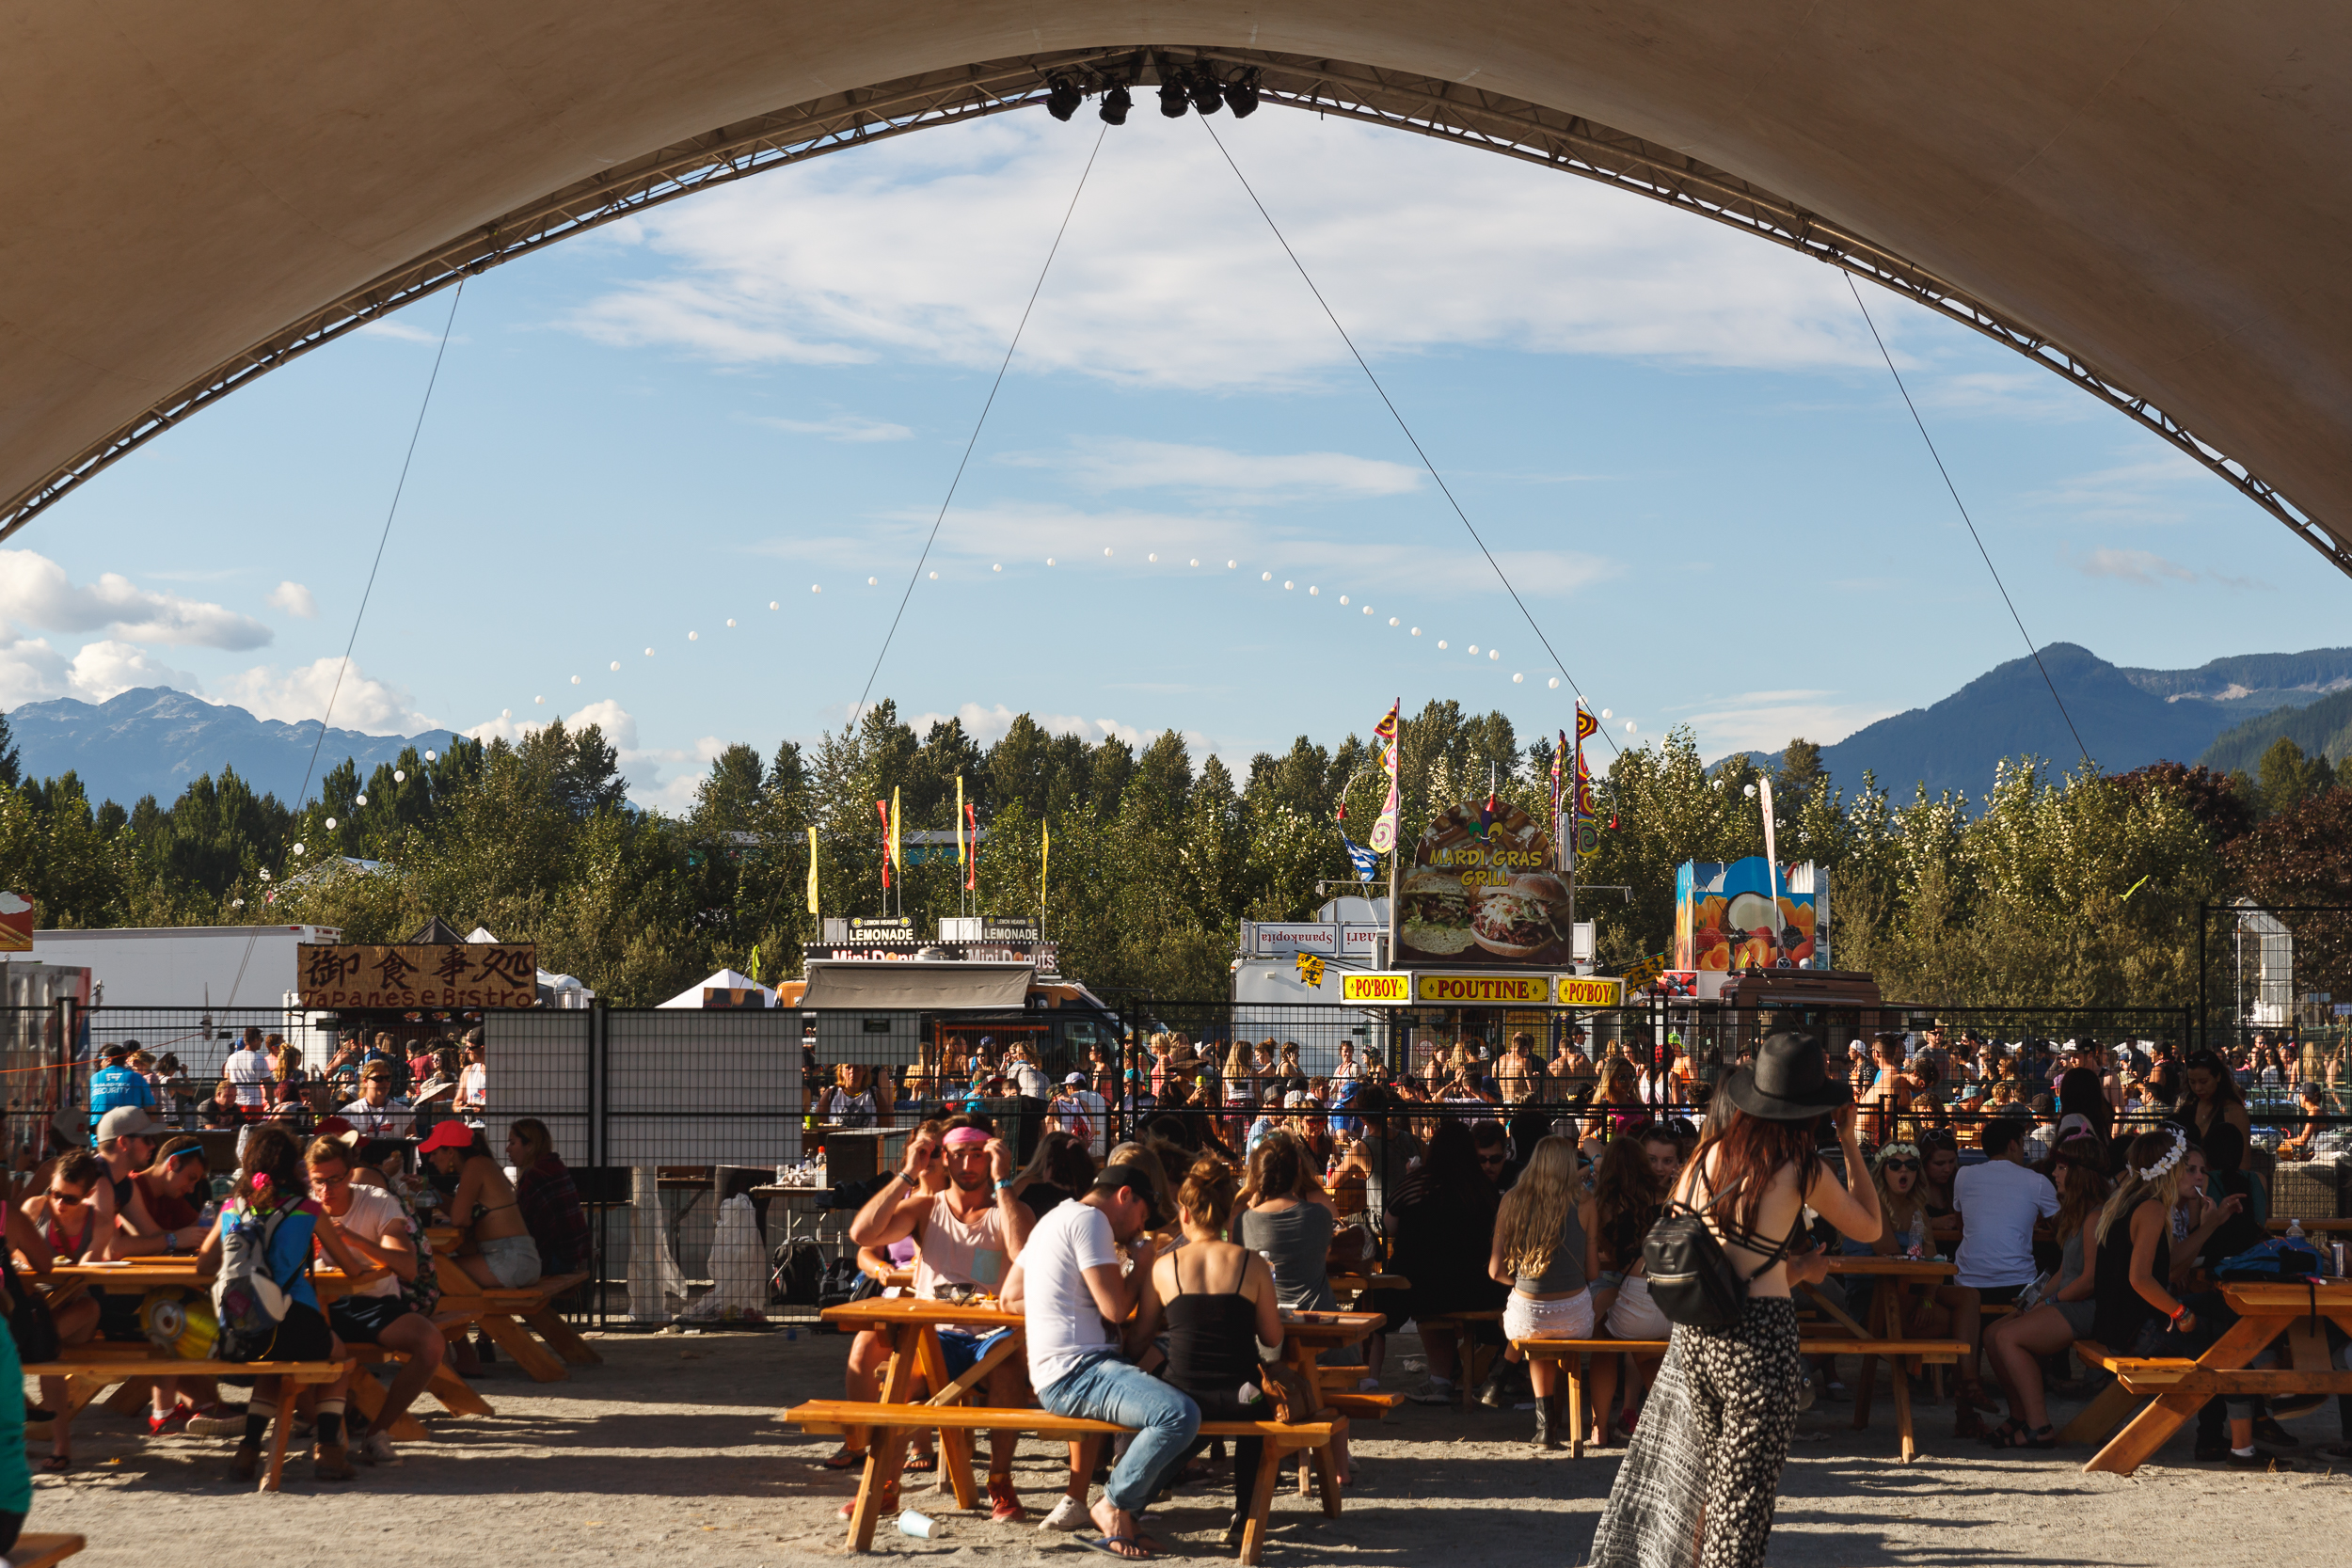 Squamish-Valley-Music-Festival-image-37.jpg